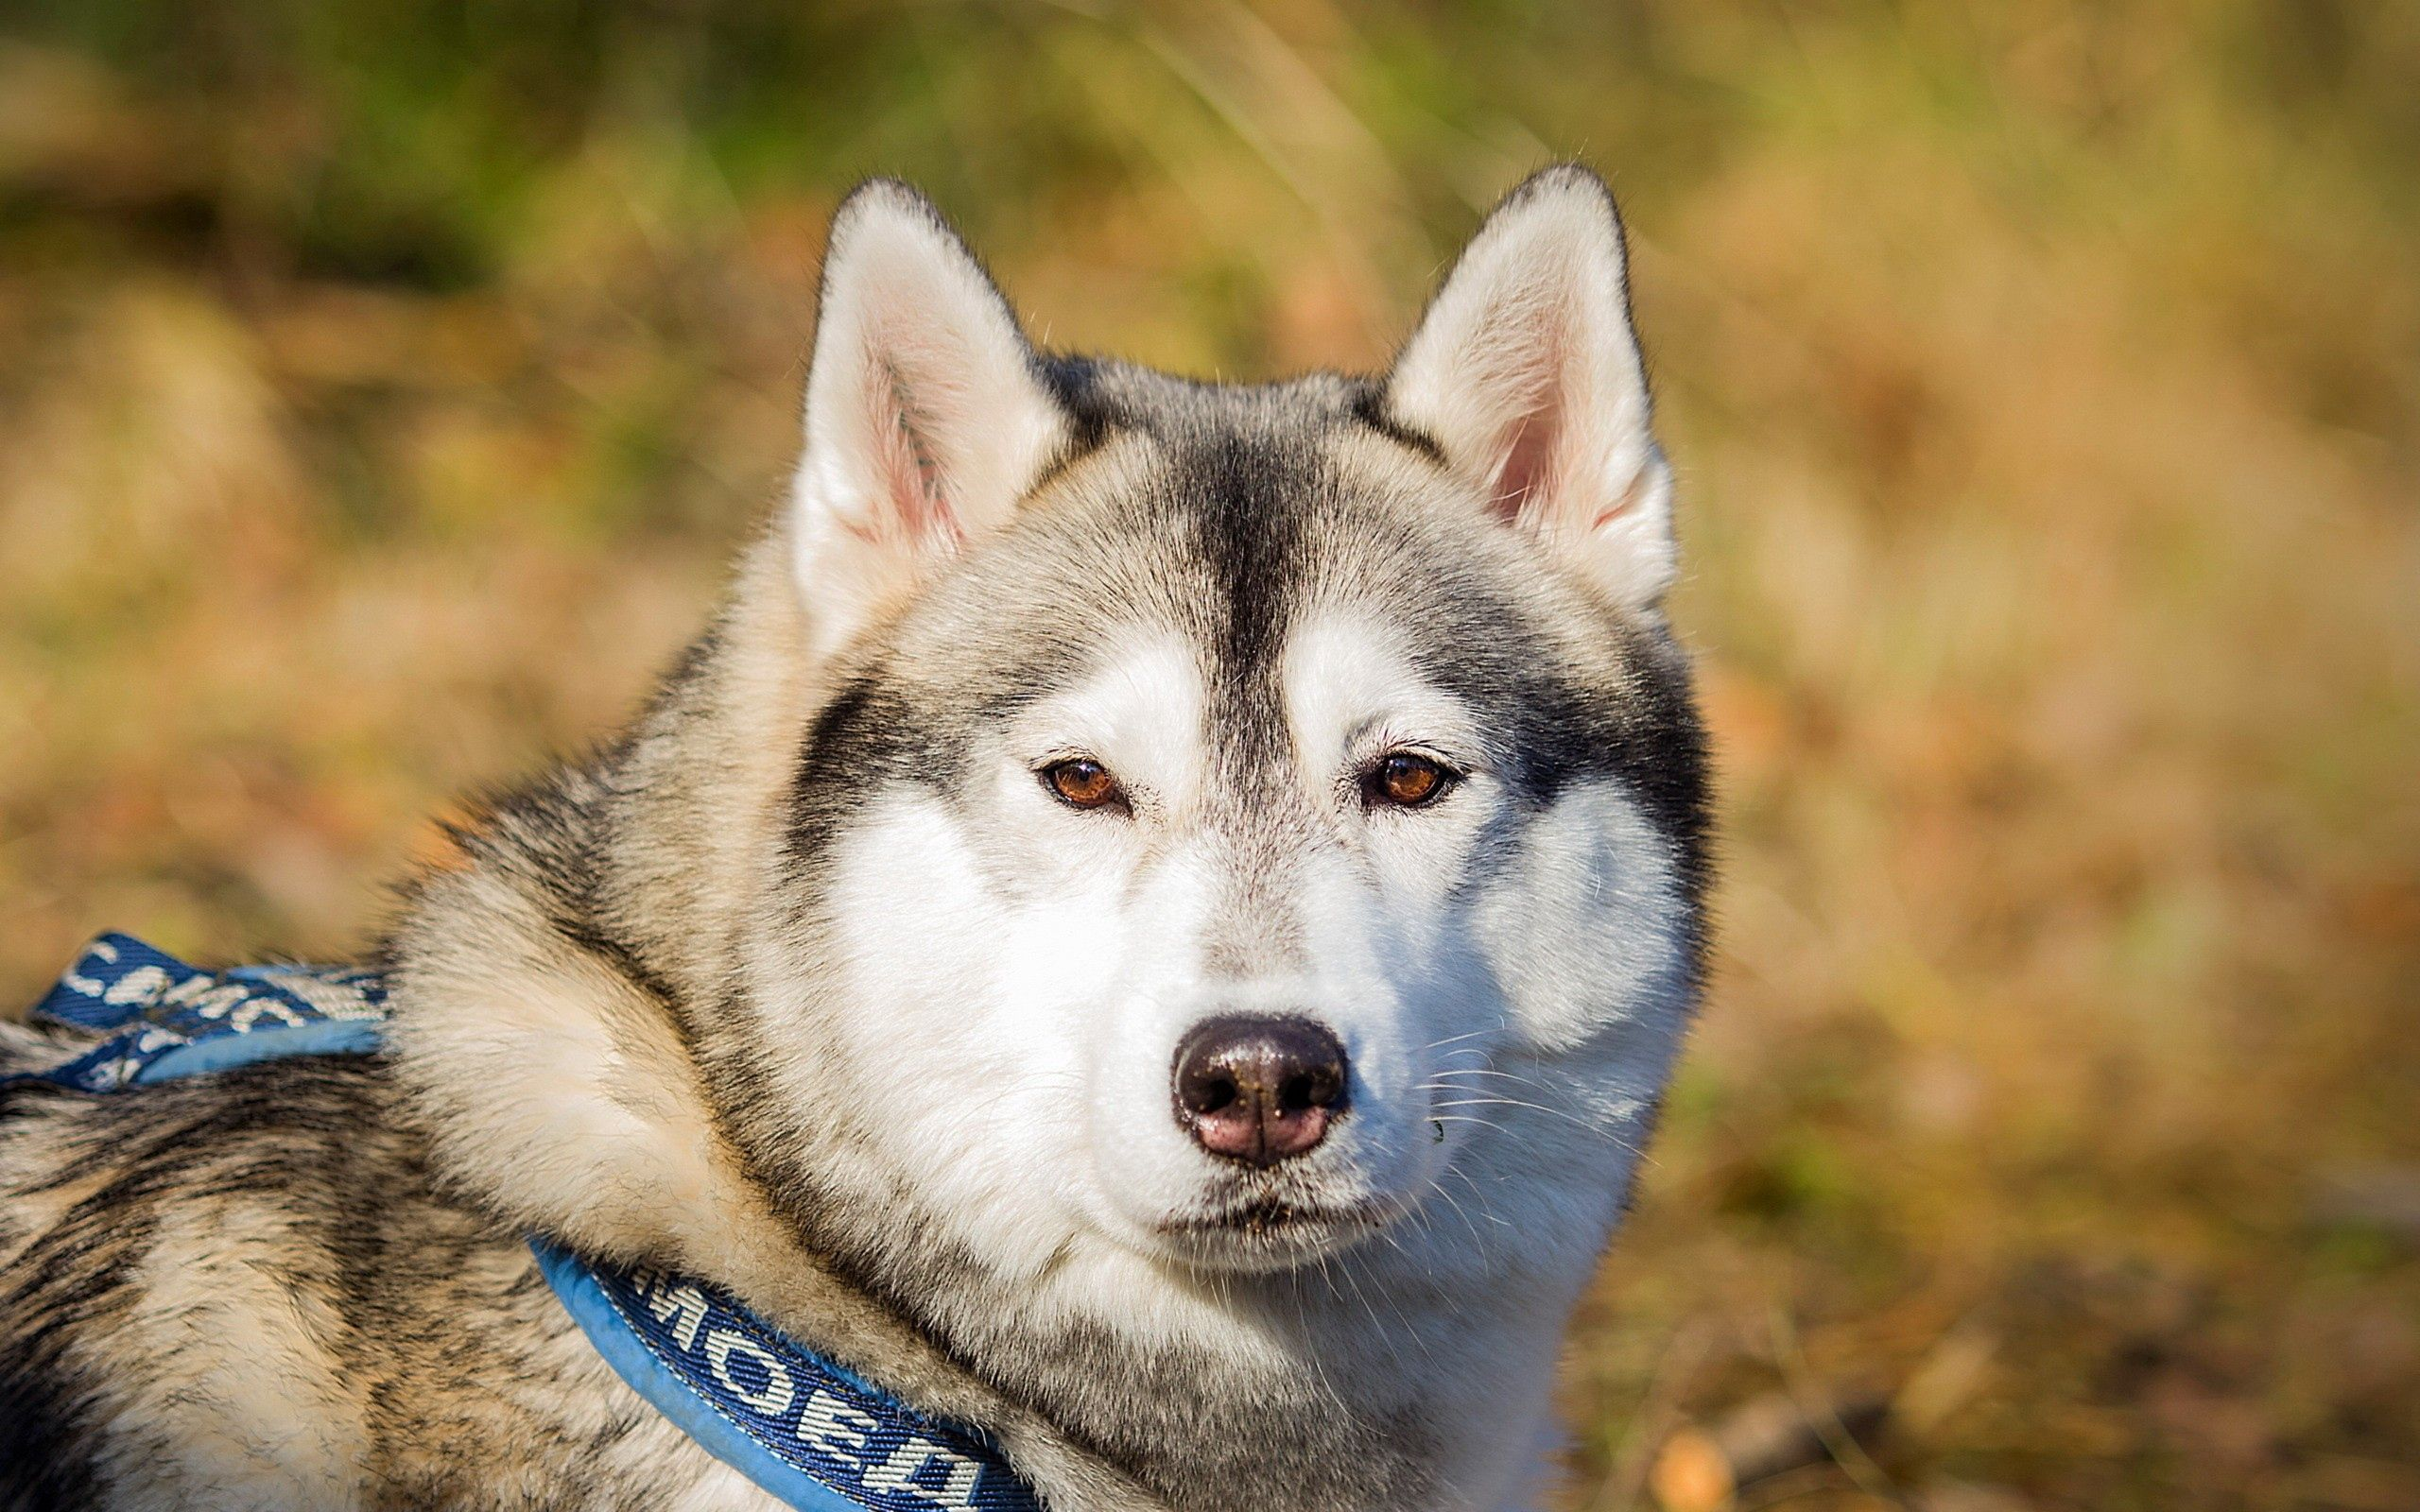 120266 download wallpaper Animals, Dog, Husky, Haska, Sight, Opinion, Spotted, Spotty, Leash screensavers and pictures for free